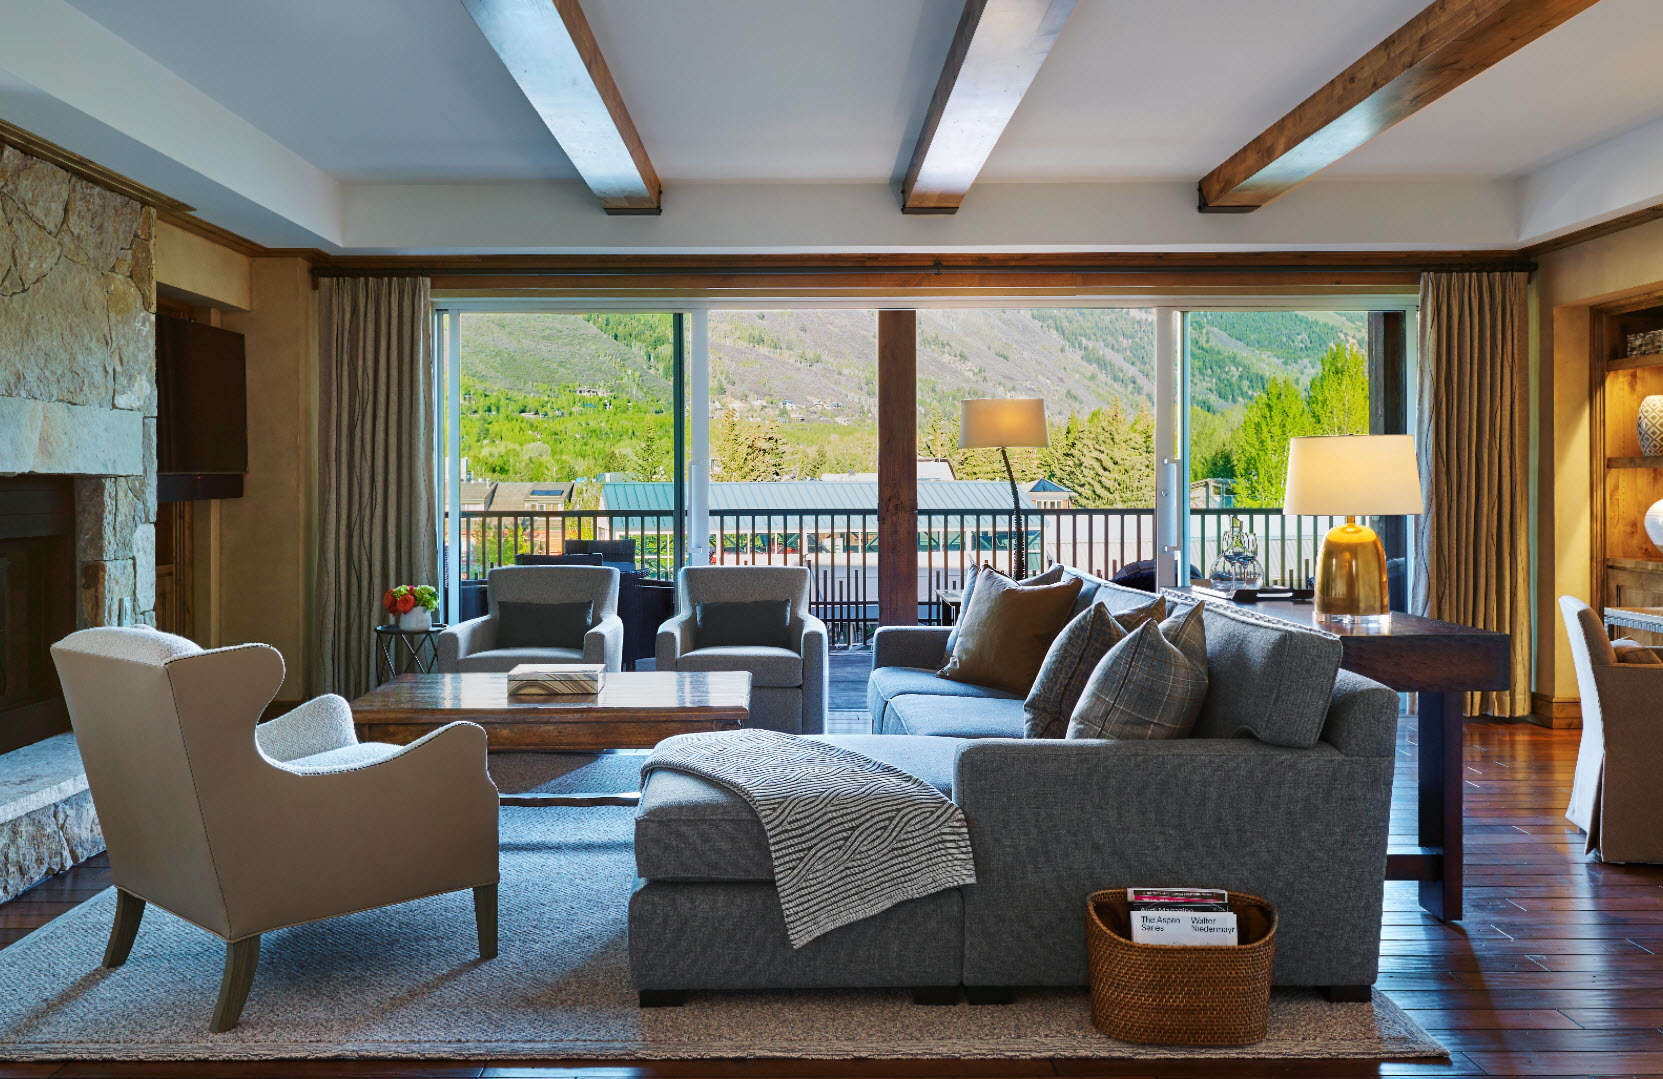 Luxury vacation rentals usa - Colorado - Aspen - 2 Bedroom Residences | The Little Nell - Image 1/11